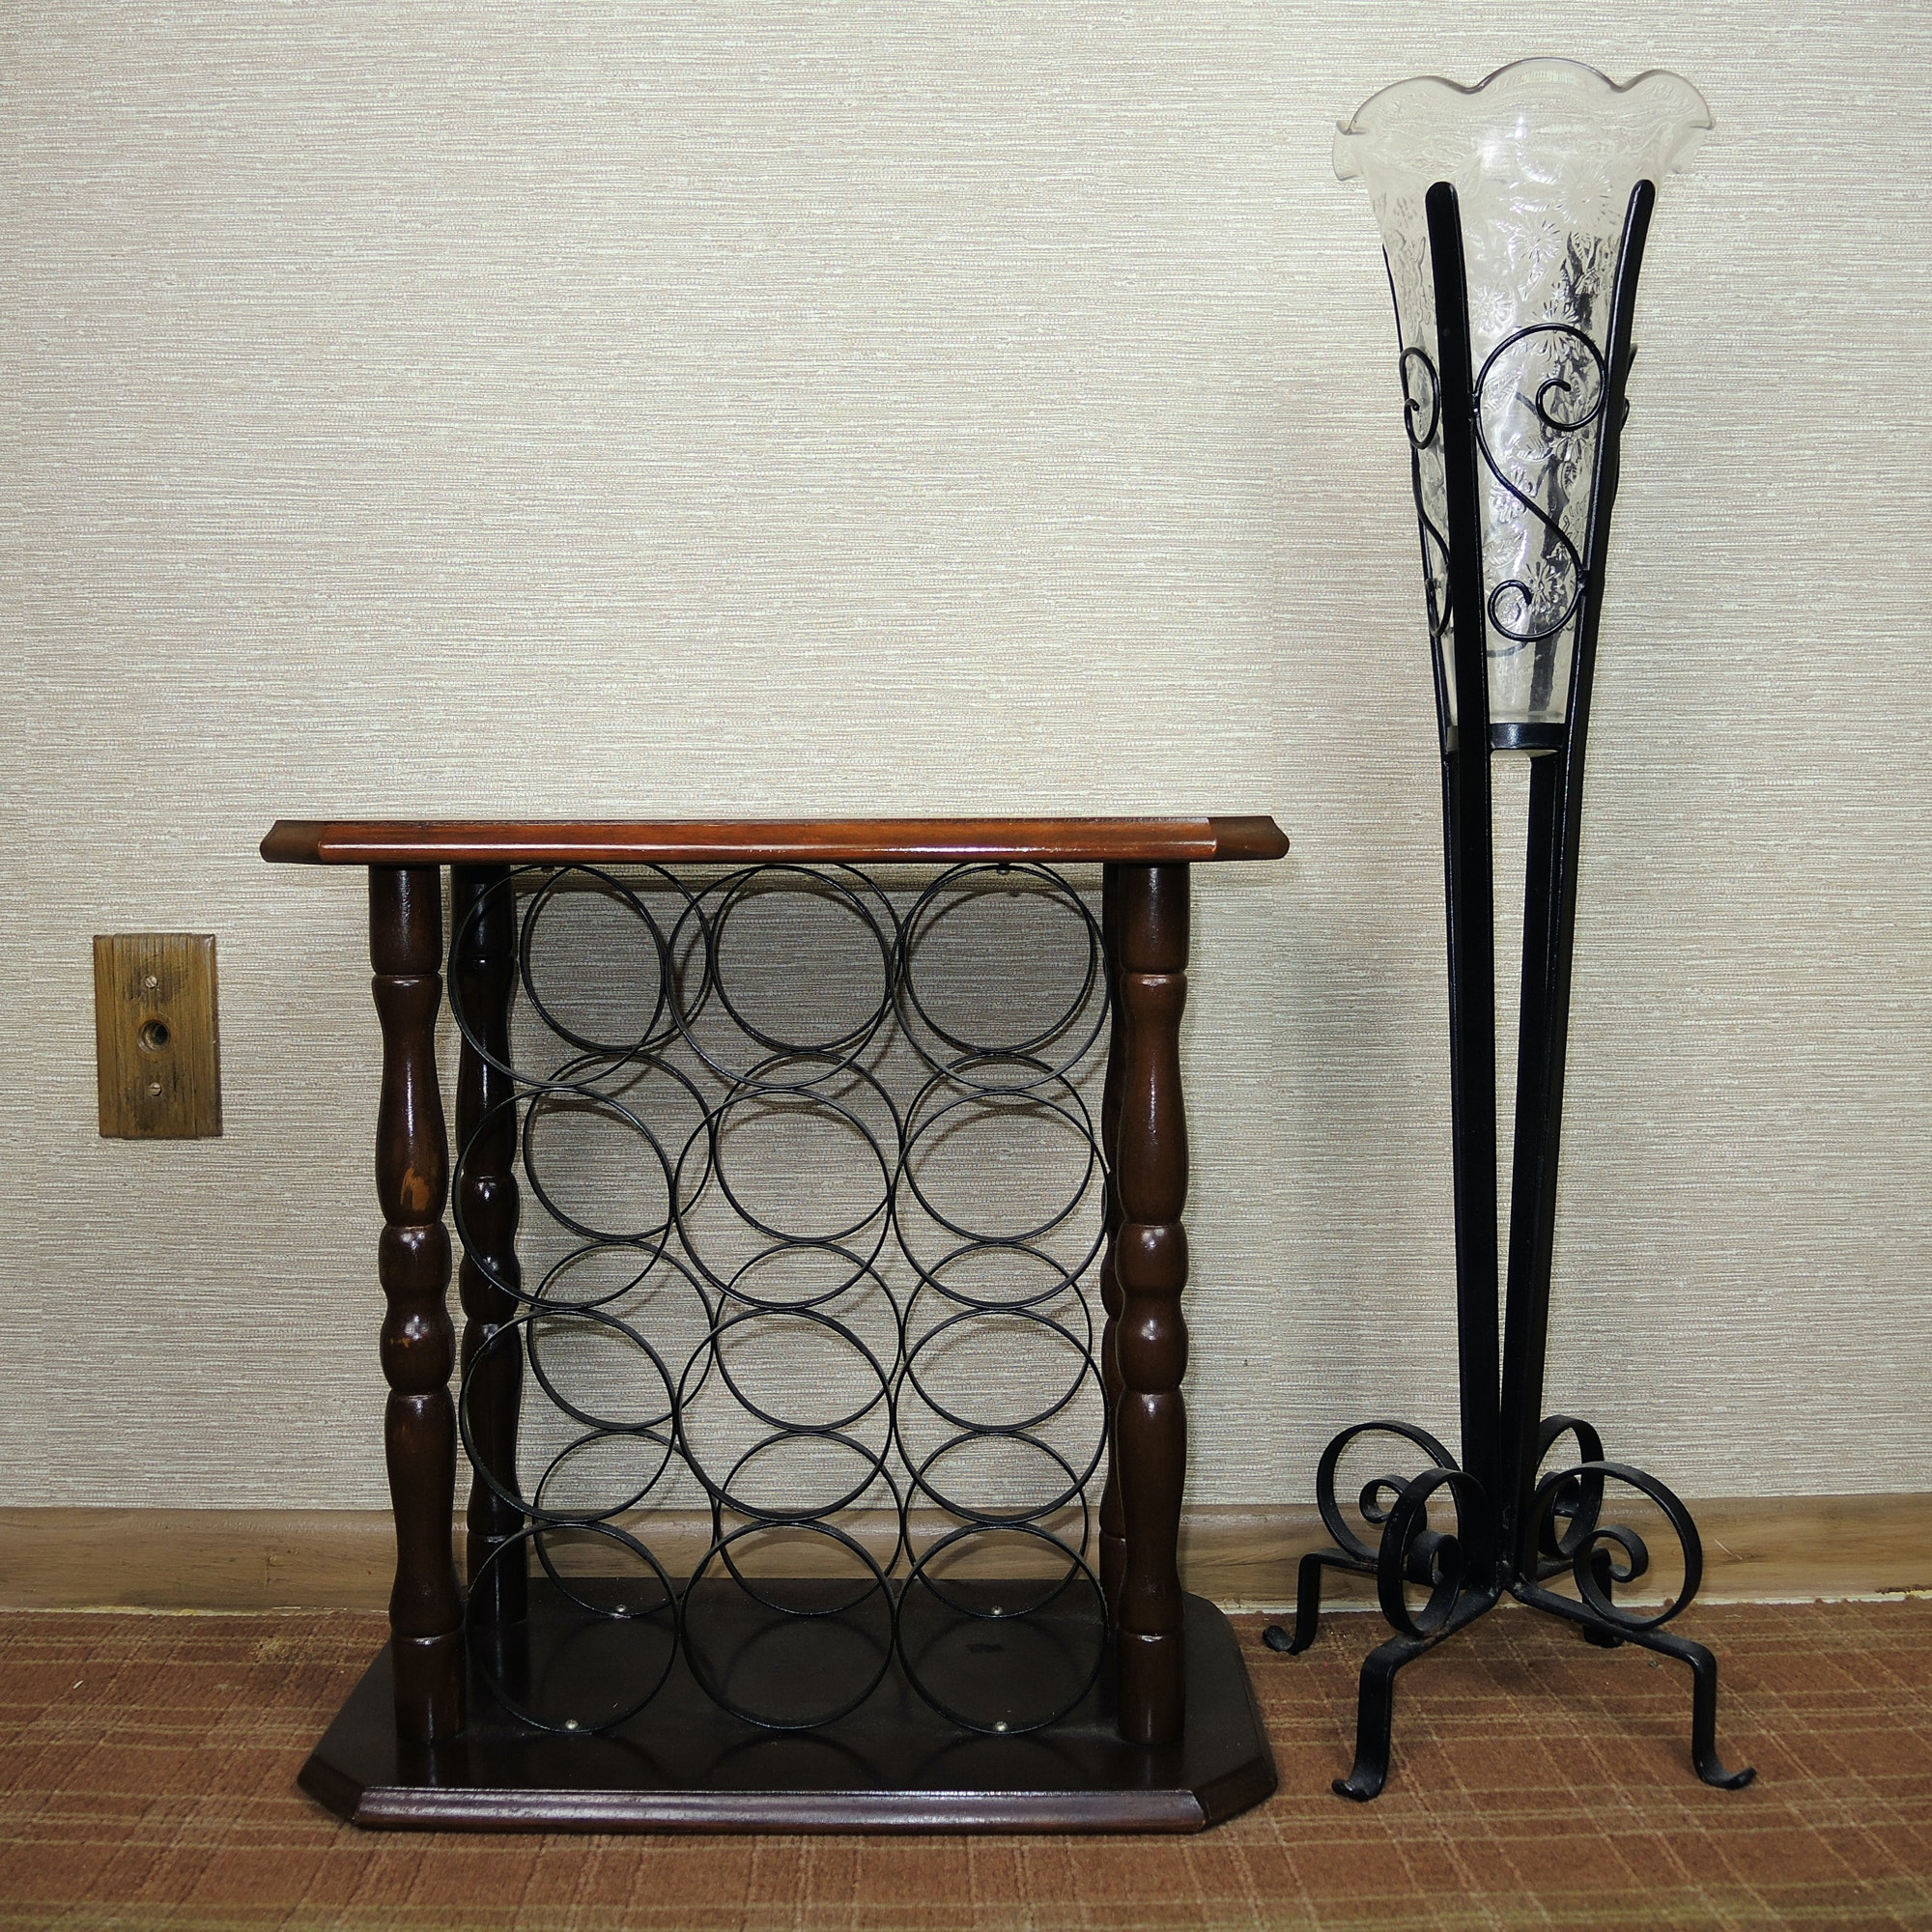 Wine Rack, Wrought Iron Stand with Glass Vase